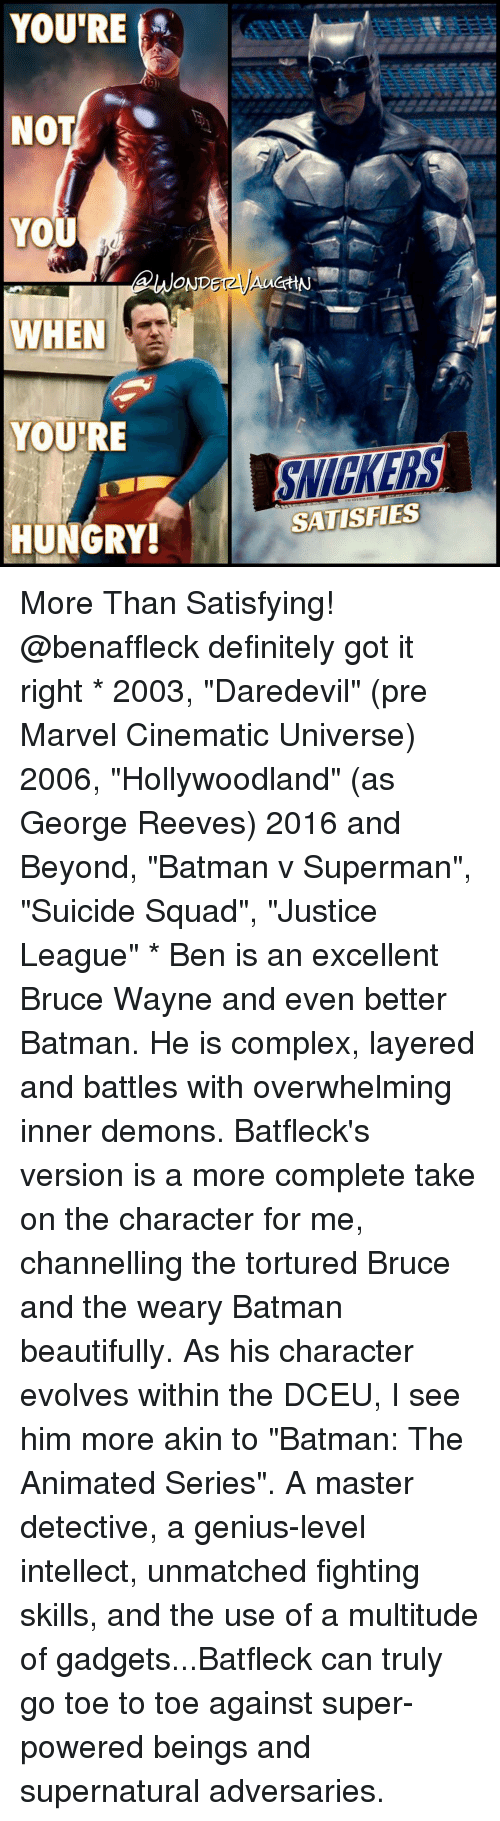 "Youre Not You When Youre Hungry: YOU'RE  NOT  YOU  WHEN  YOURE  HUNGRY!  GHN  SATISFIES More Than Satisfying! @benaffleck definitely got it right * 2003, ""Daredevil"" (pre Marvel Cinematic Universe) 2006, ""Hollywoodland"" (as George Reeves) 2016 and Beyond, ""Batman v Superman"", ""Suicide Squad"", ""Justice League"" * Ben is an excellent Bruce Wayne and even better Batman. He is complex, layered and battles with overwhelming inner demons. Batfleck's version is a more complete take on the character for me, channelling the tortured Bruce and the weary Batman beautifully. As his character evolves within the DCEU, I see him more akin to ""Batman: The Animated Series"". A master detective, a genius-level intellect, unmatched fighting skills, and the use of a multitude of gadgets...Batfleck can truly go toe to toe against super-powered beings and supernatural adversaries."